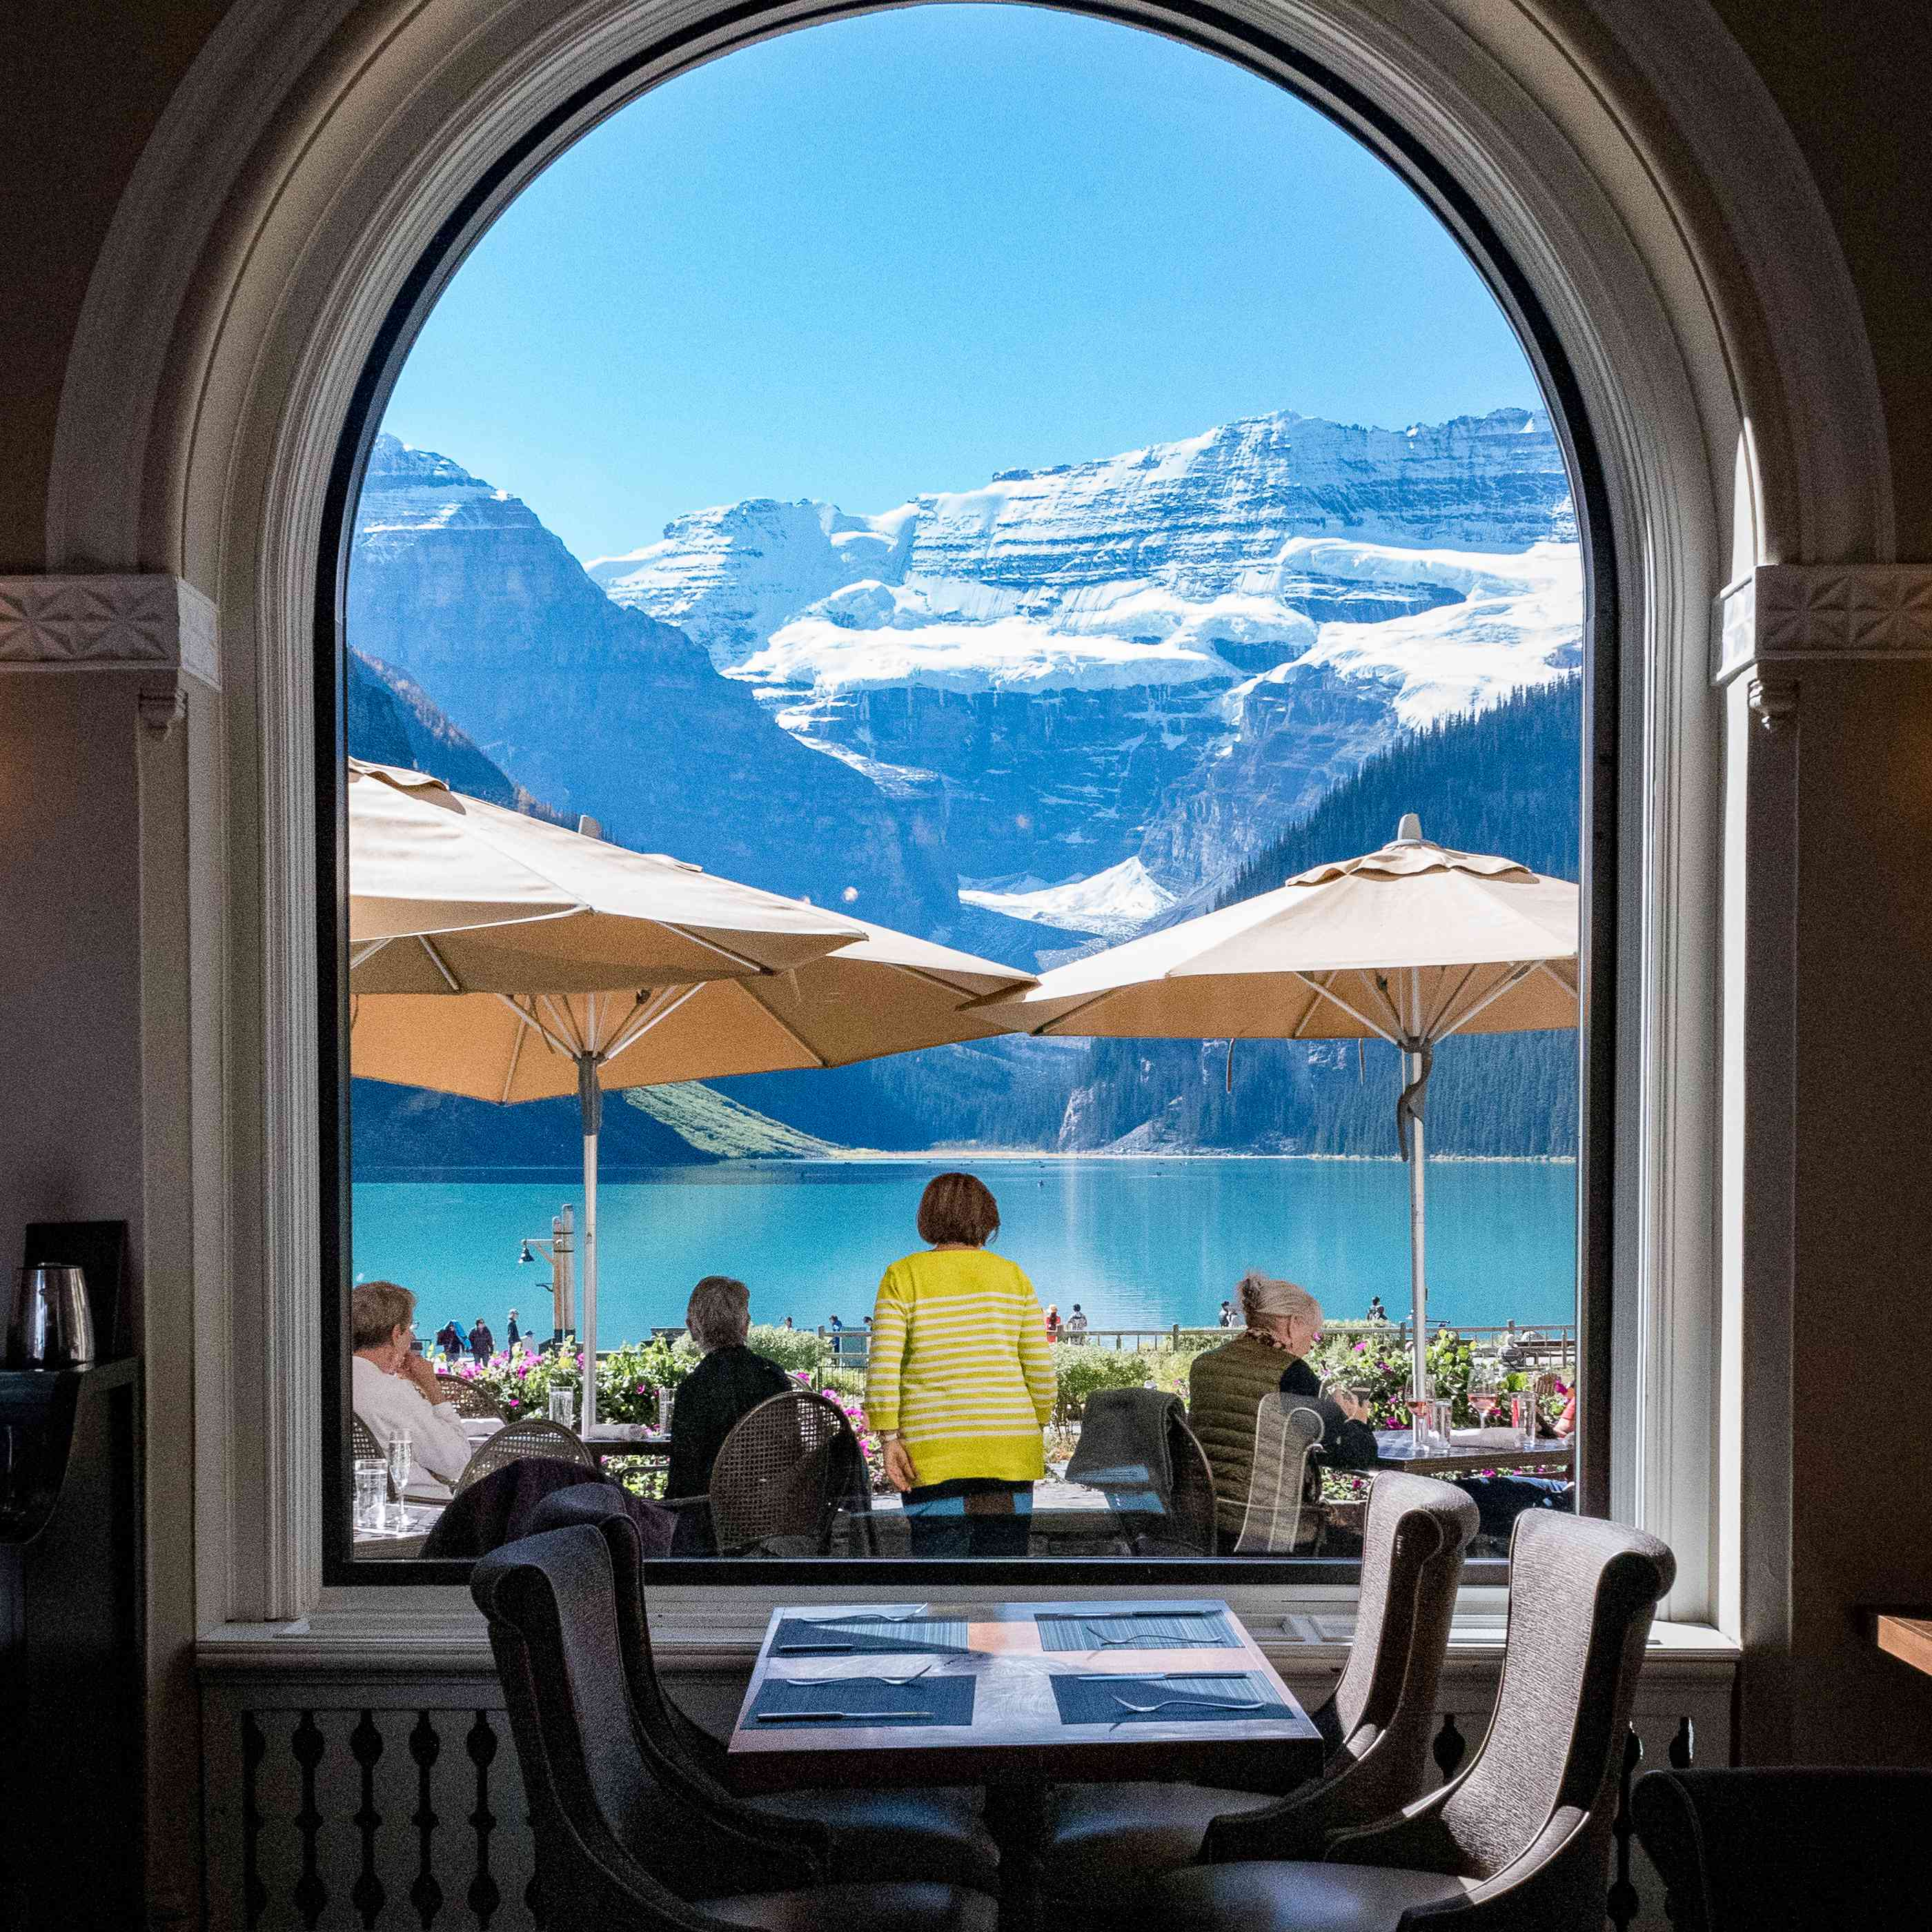 A window looking out to a gorgeous mountain and lake view